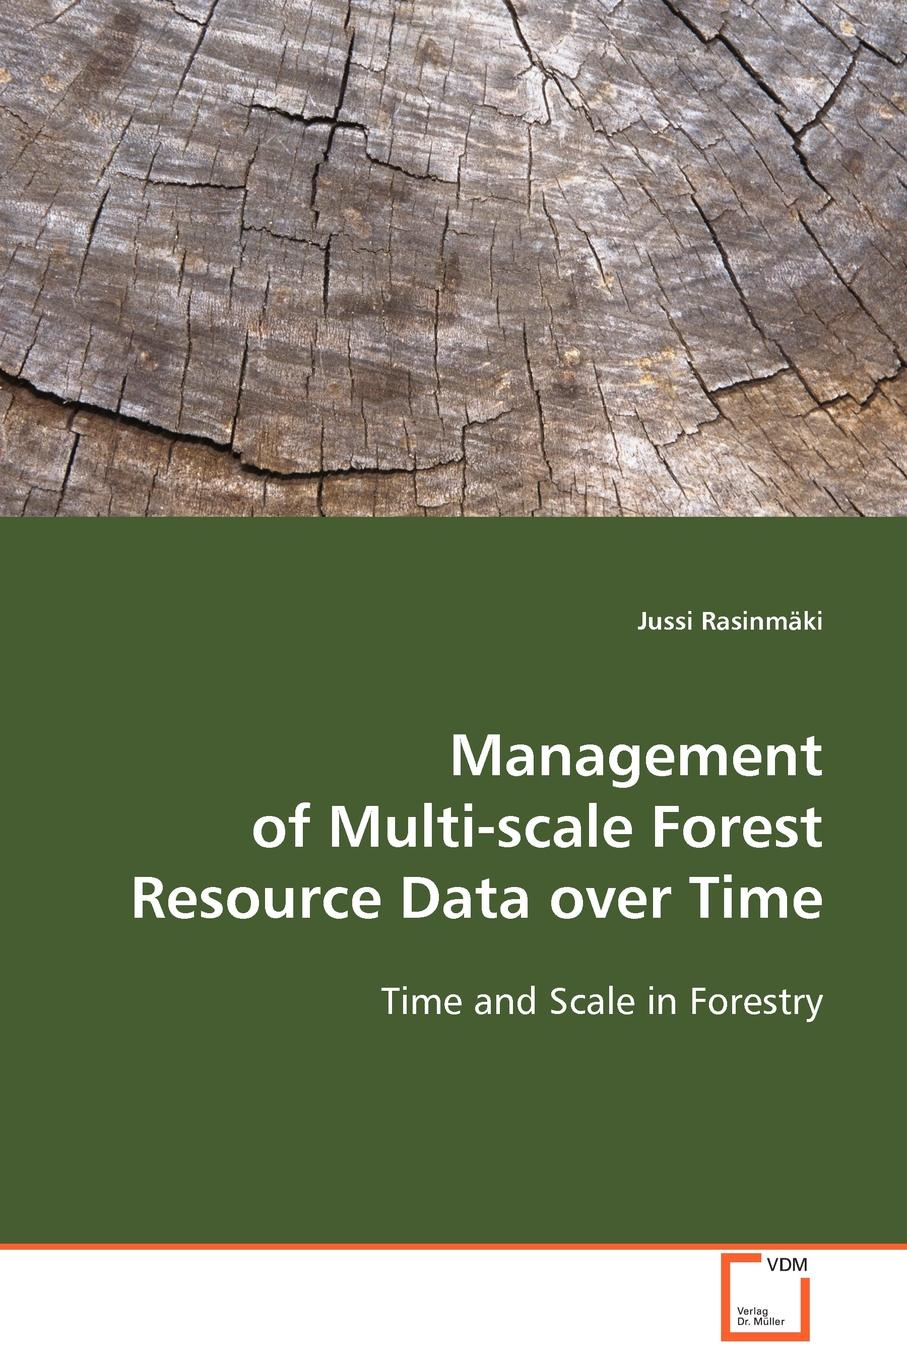 Jussi Rasinmäki Management of Multi-scale Forest Resource Data over Time forest resource use by adjacent communities of mau forest complex